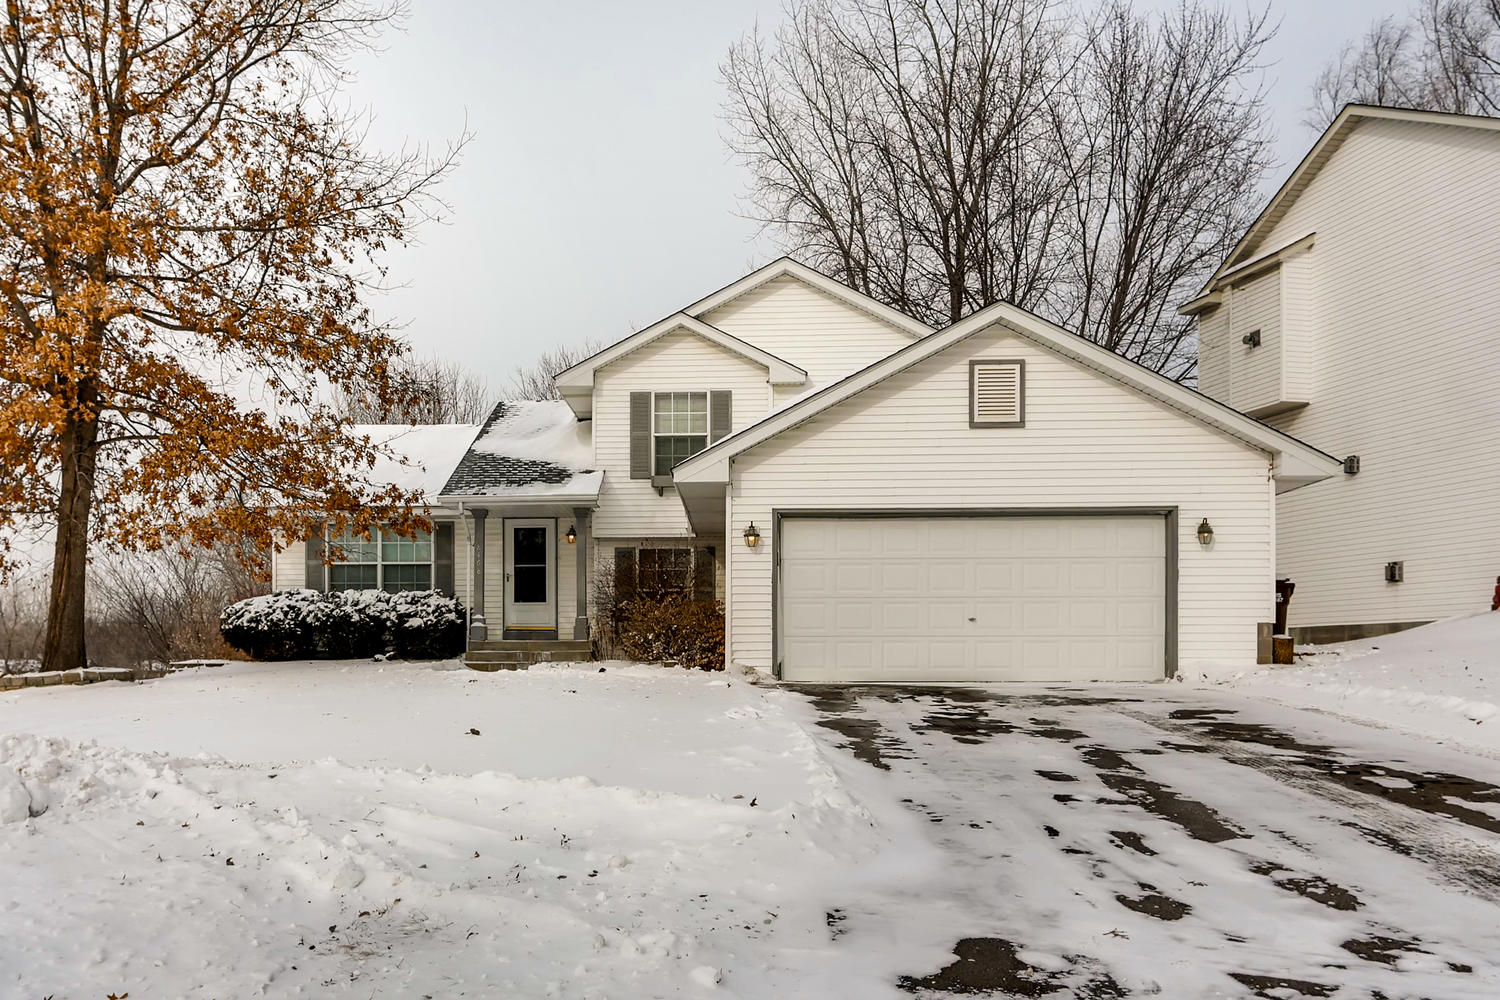 Photo of 8468 Jeffery Ave S, Cottage Grove, MN, 55016